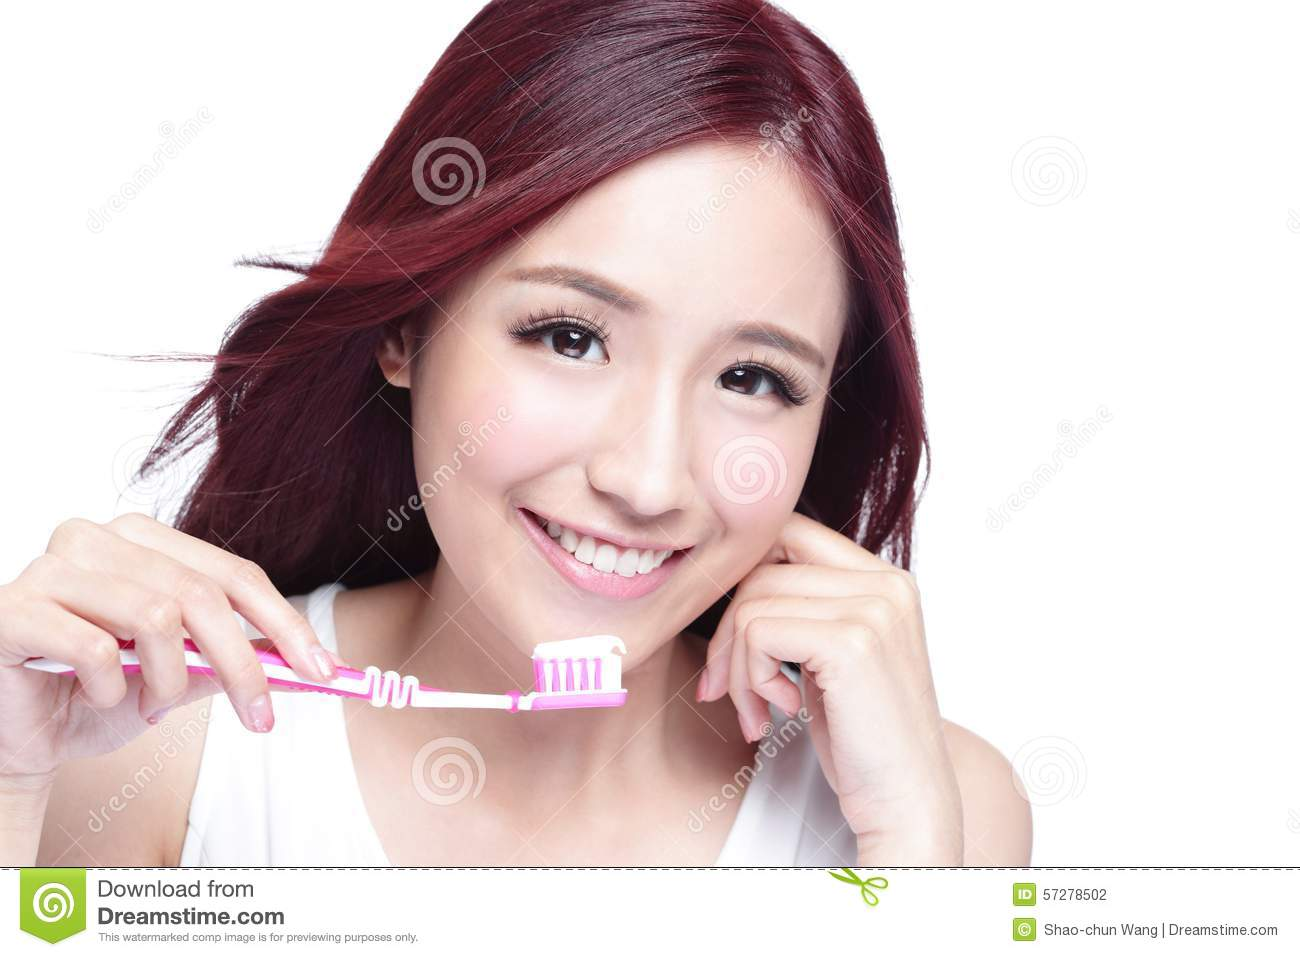 brush asian girl personals Contact tickle world - solleticandia on messenger  feet personals website footexhibit  asian girl tickled with a golden brush # ticklefeet # ticklish.